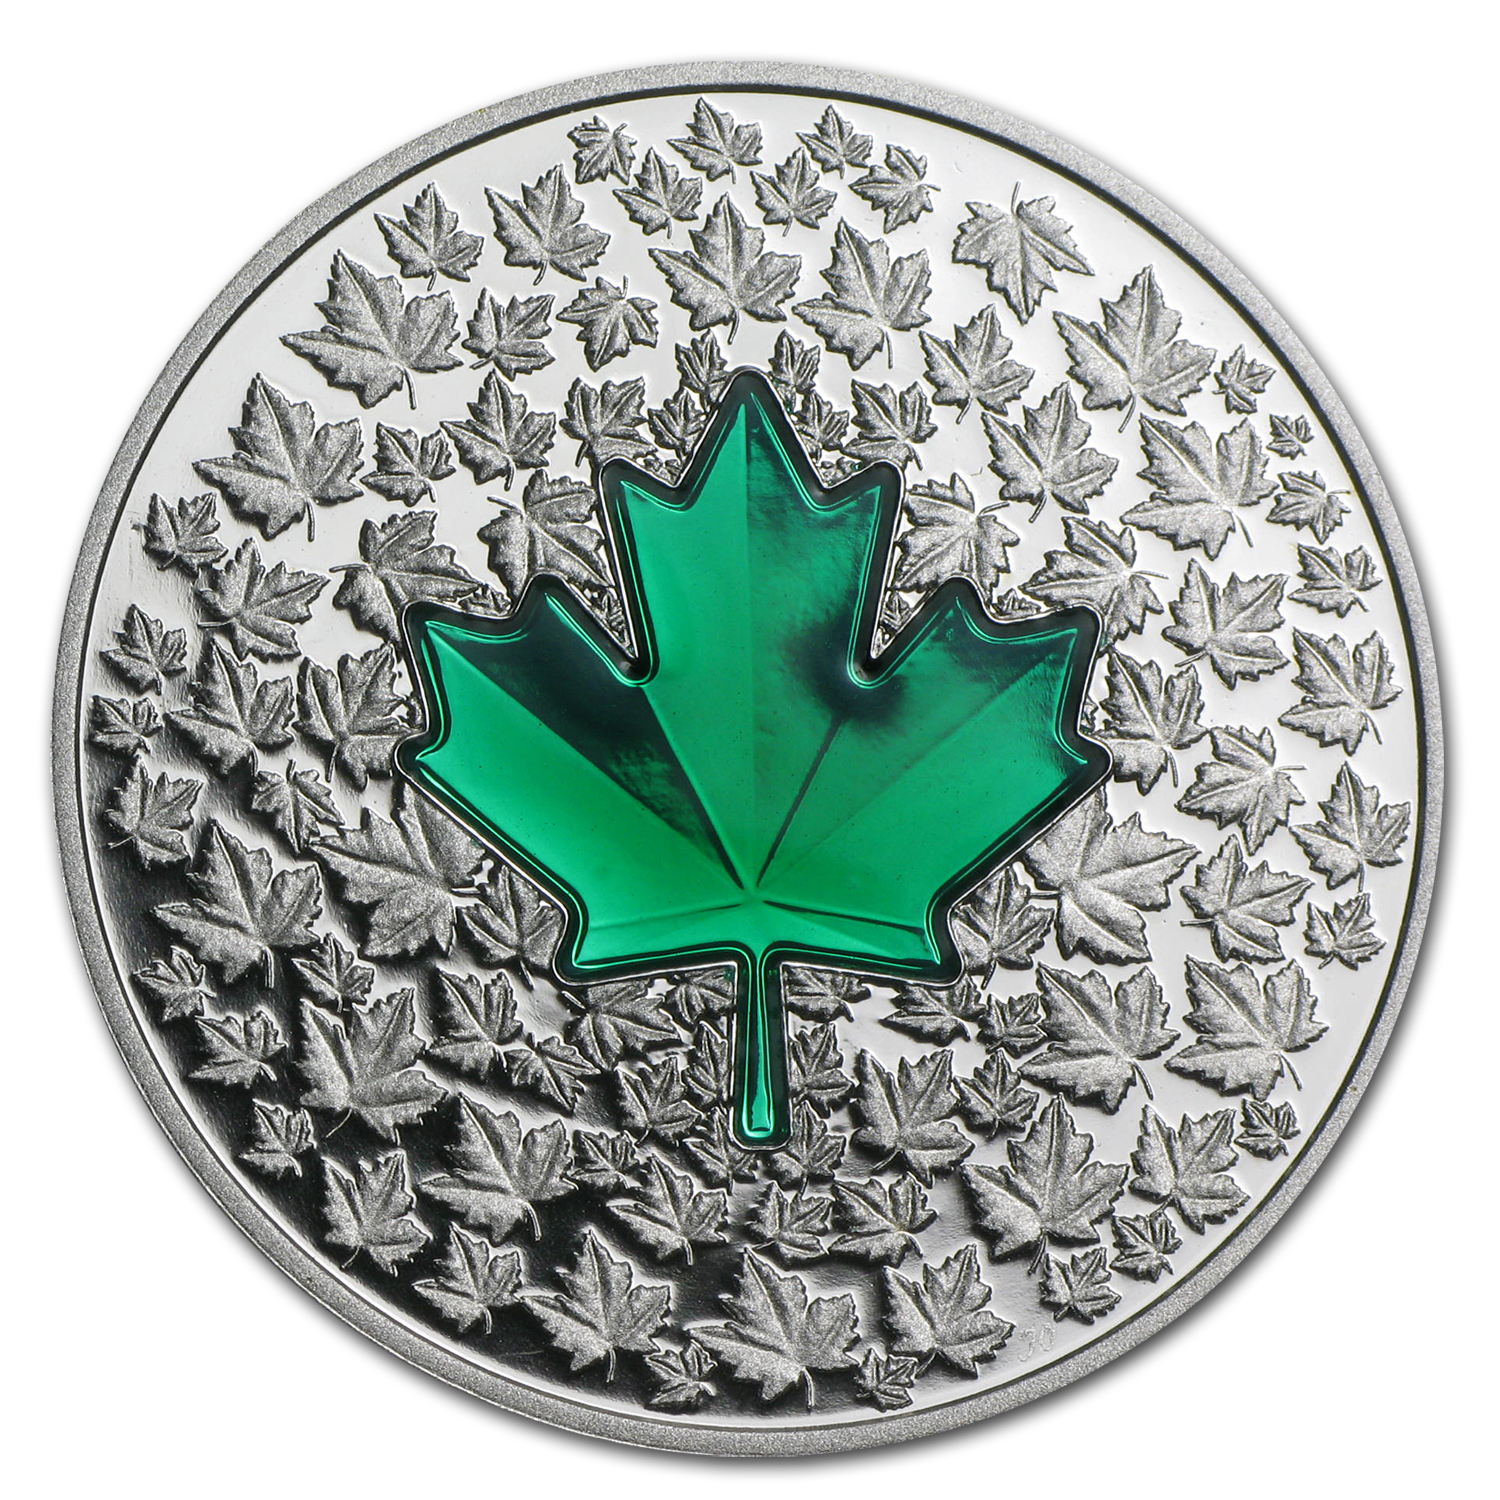 2014 Canada 1 oz Silver $20 Maple Leaf Impression (Green Enamel)